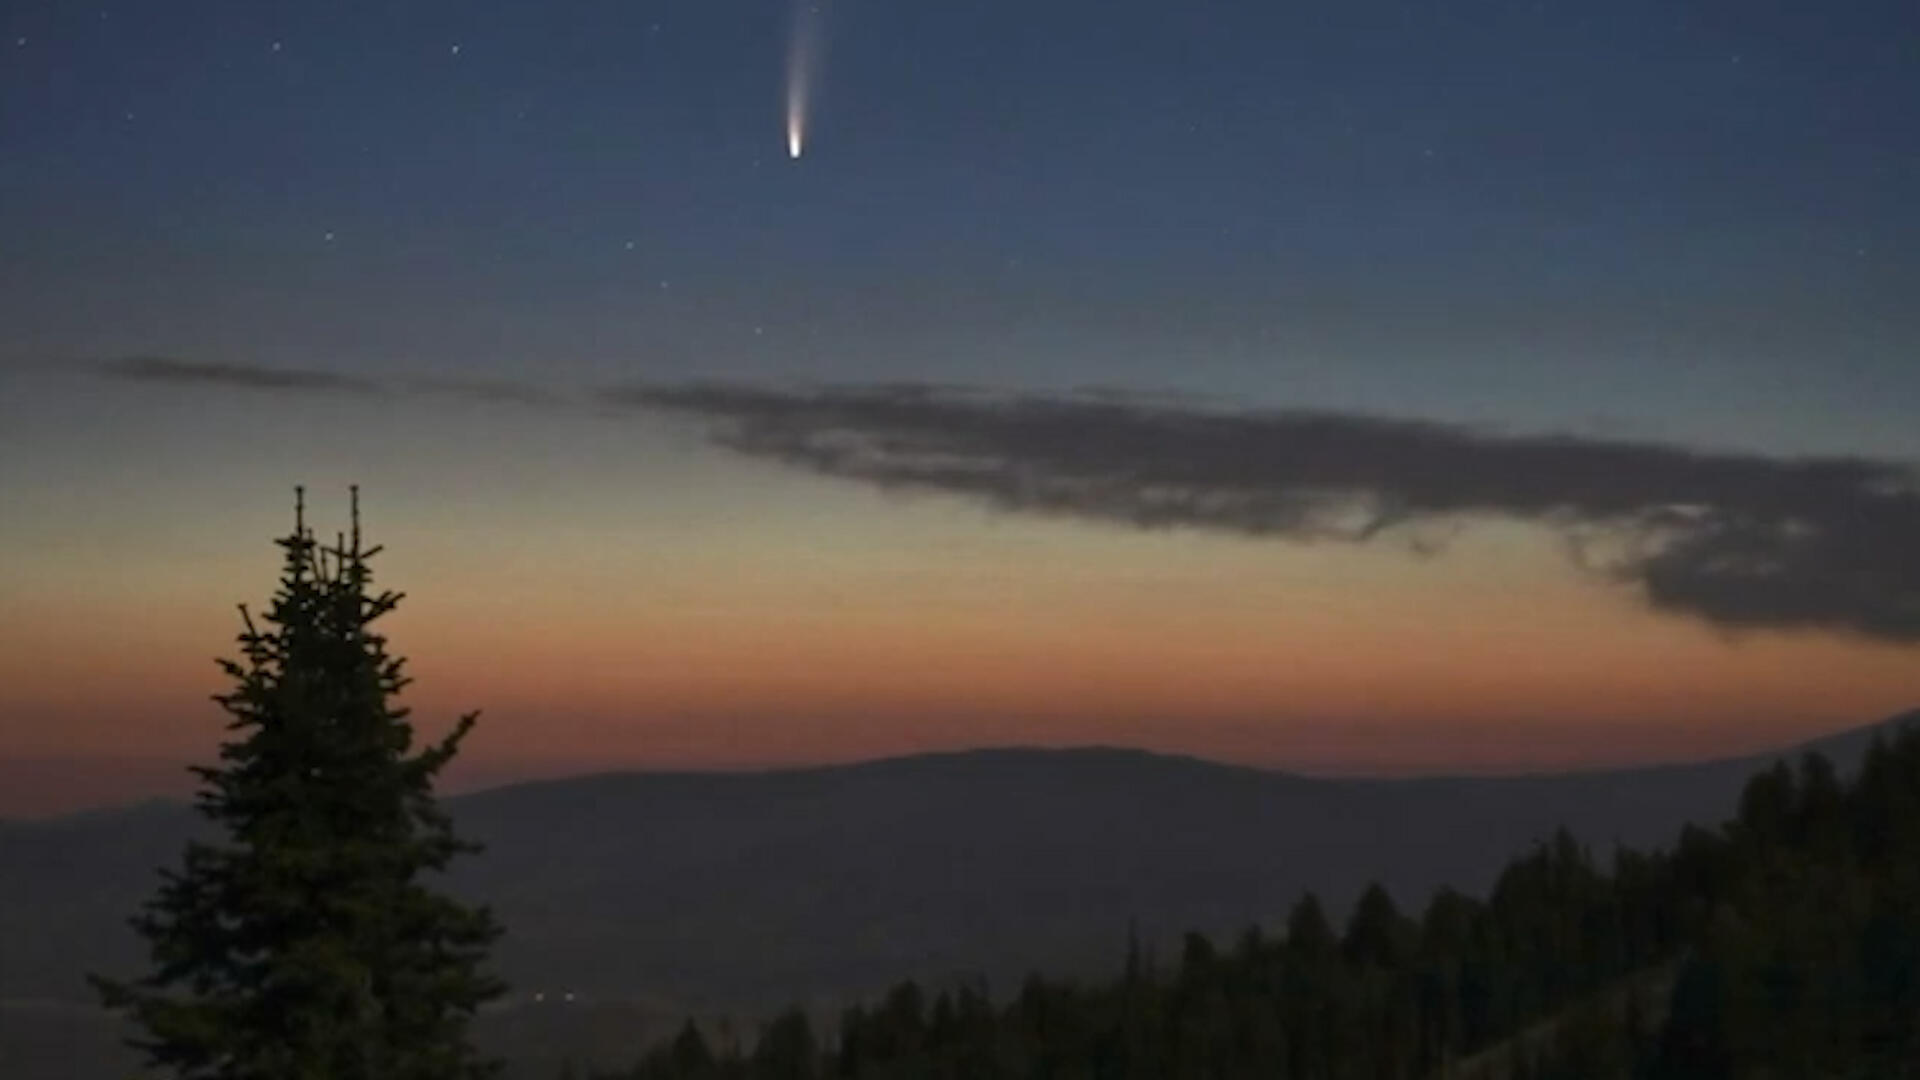 Video: Tips for catching comet Neowise with your camera